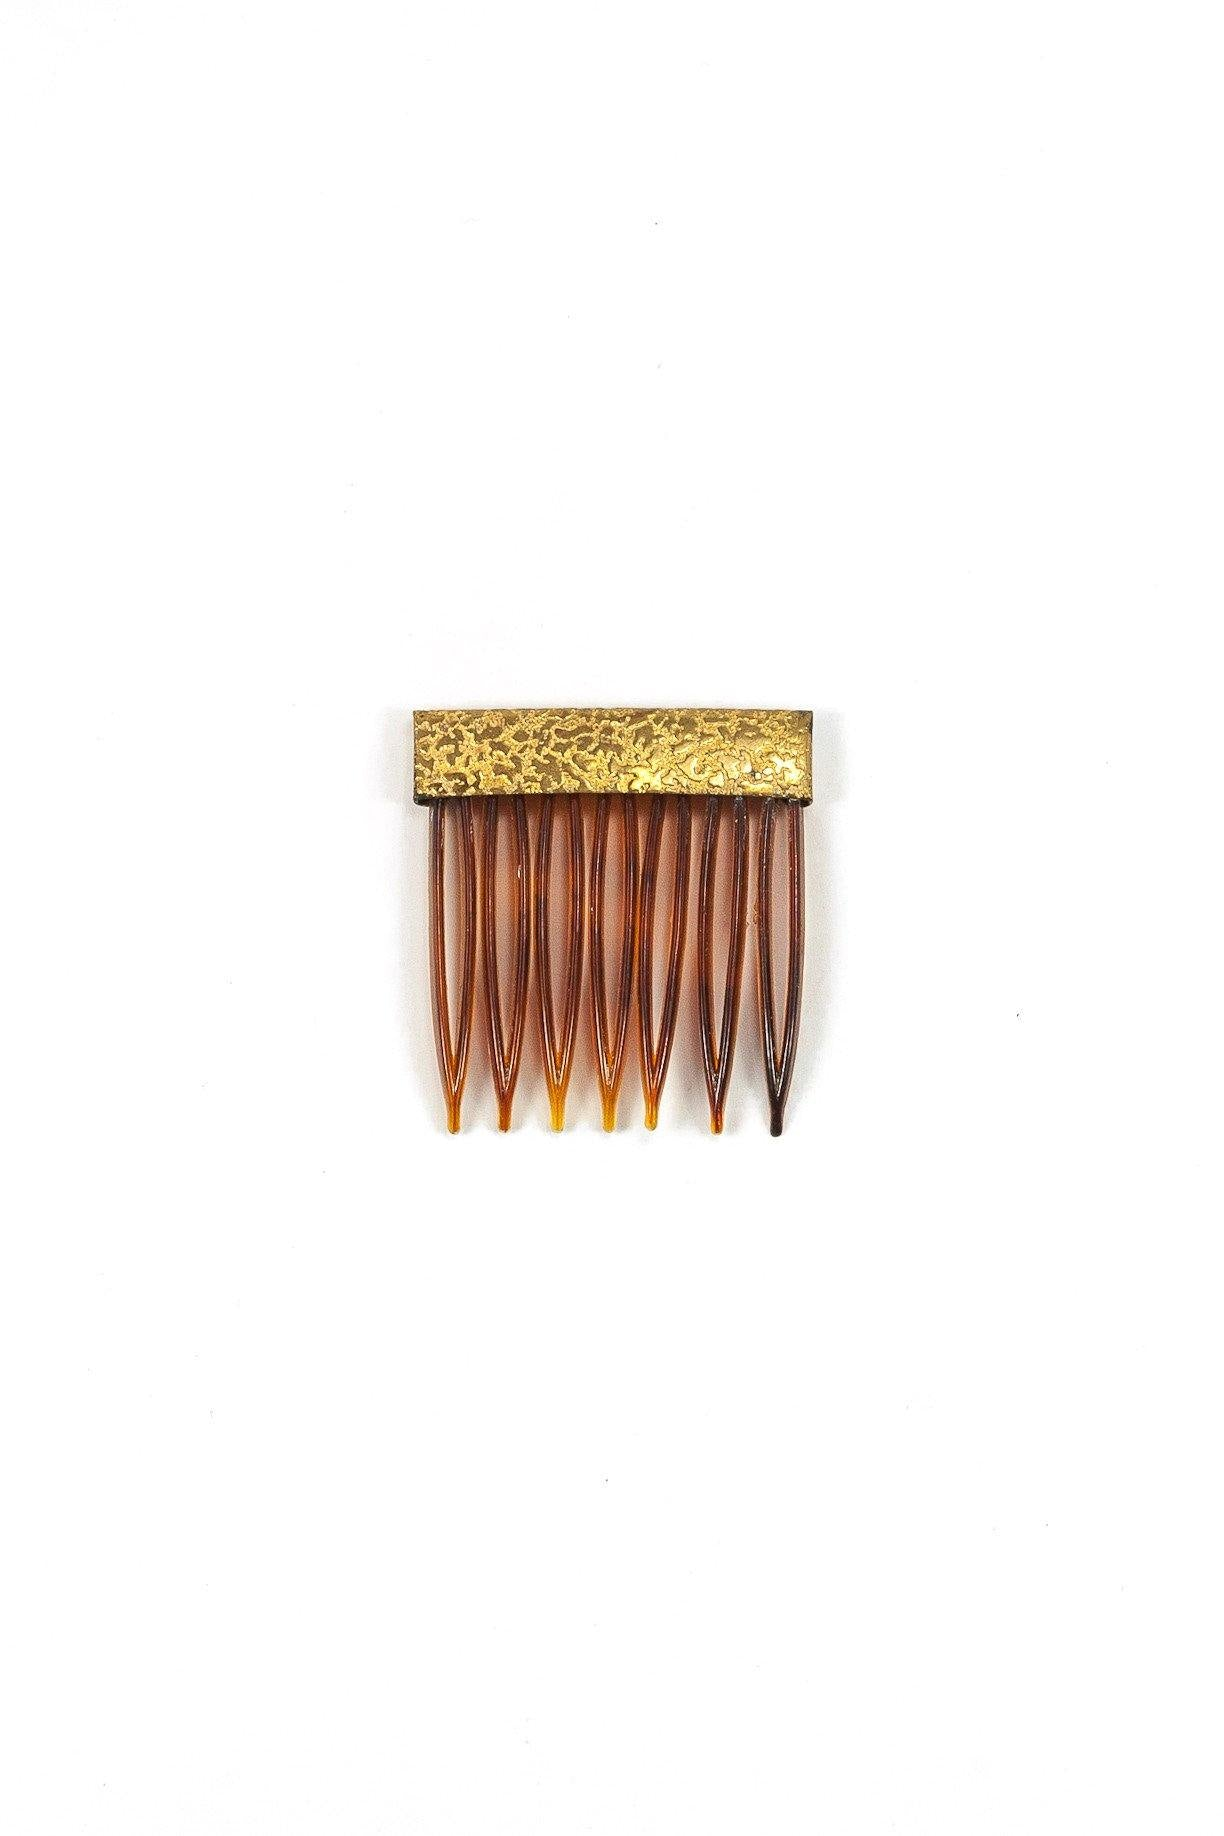 50's__Vintage__Textured Gold Hair Comb